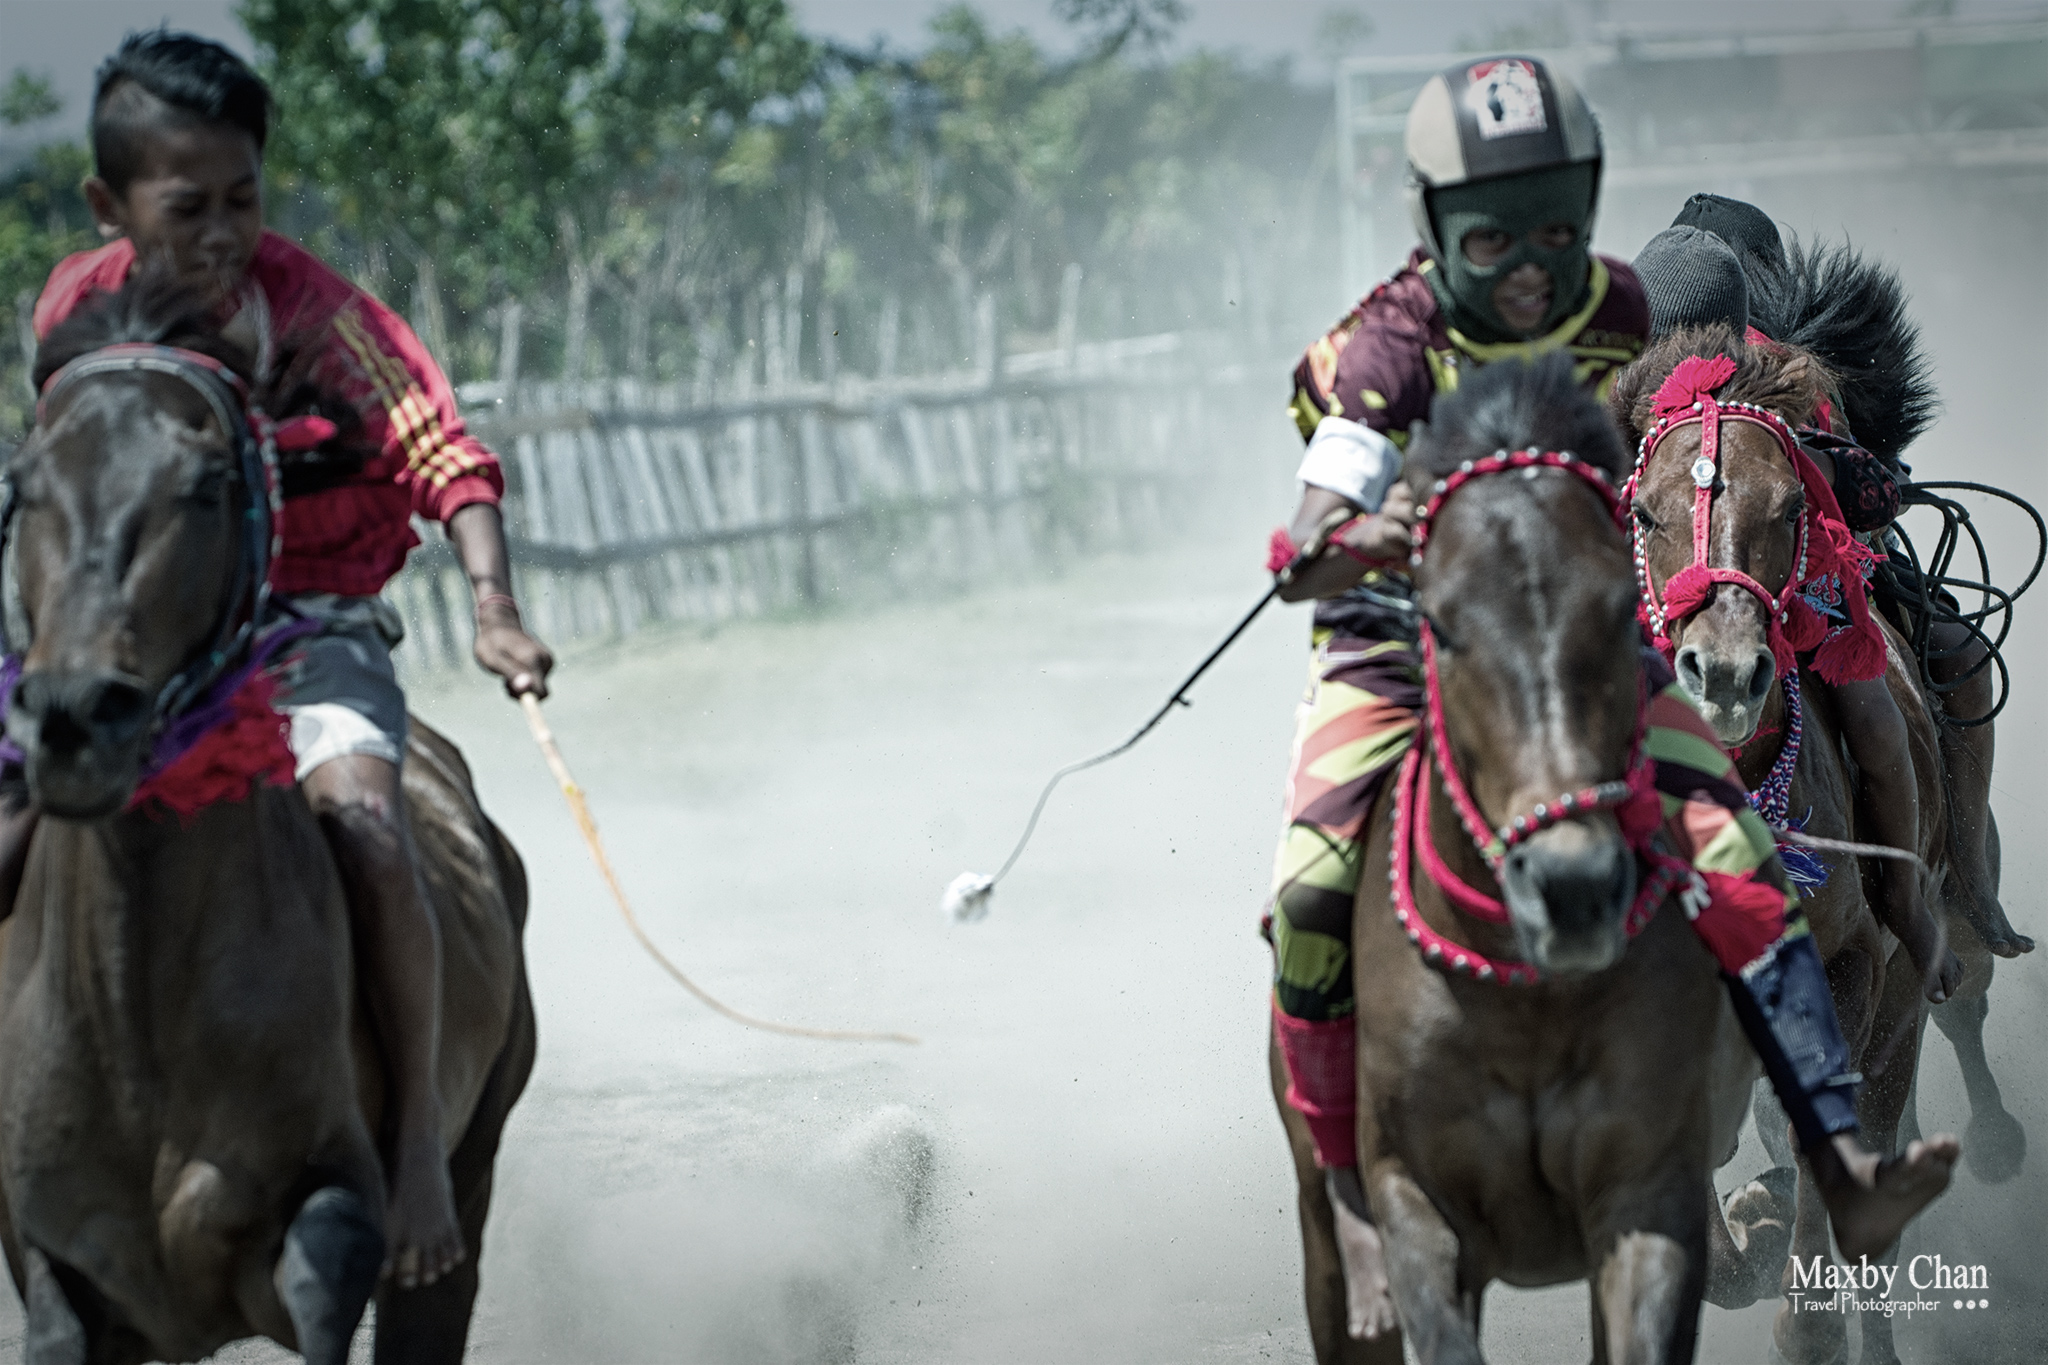 There were fierce competition among the jockeys even though this was just a practice session.